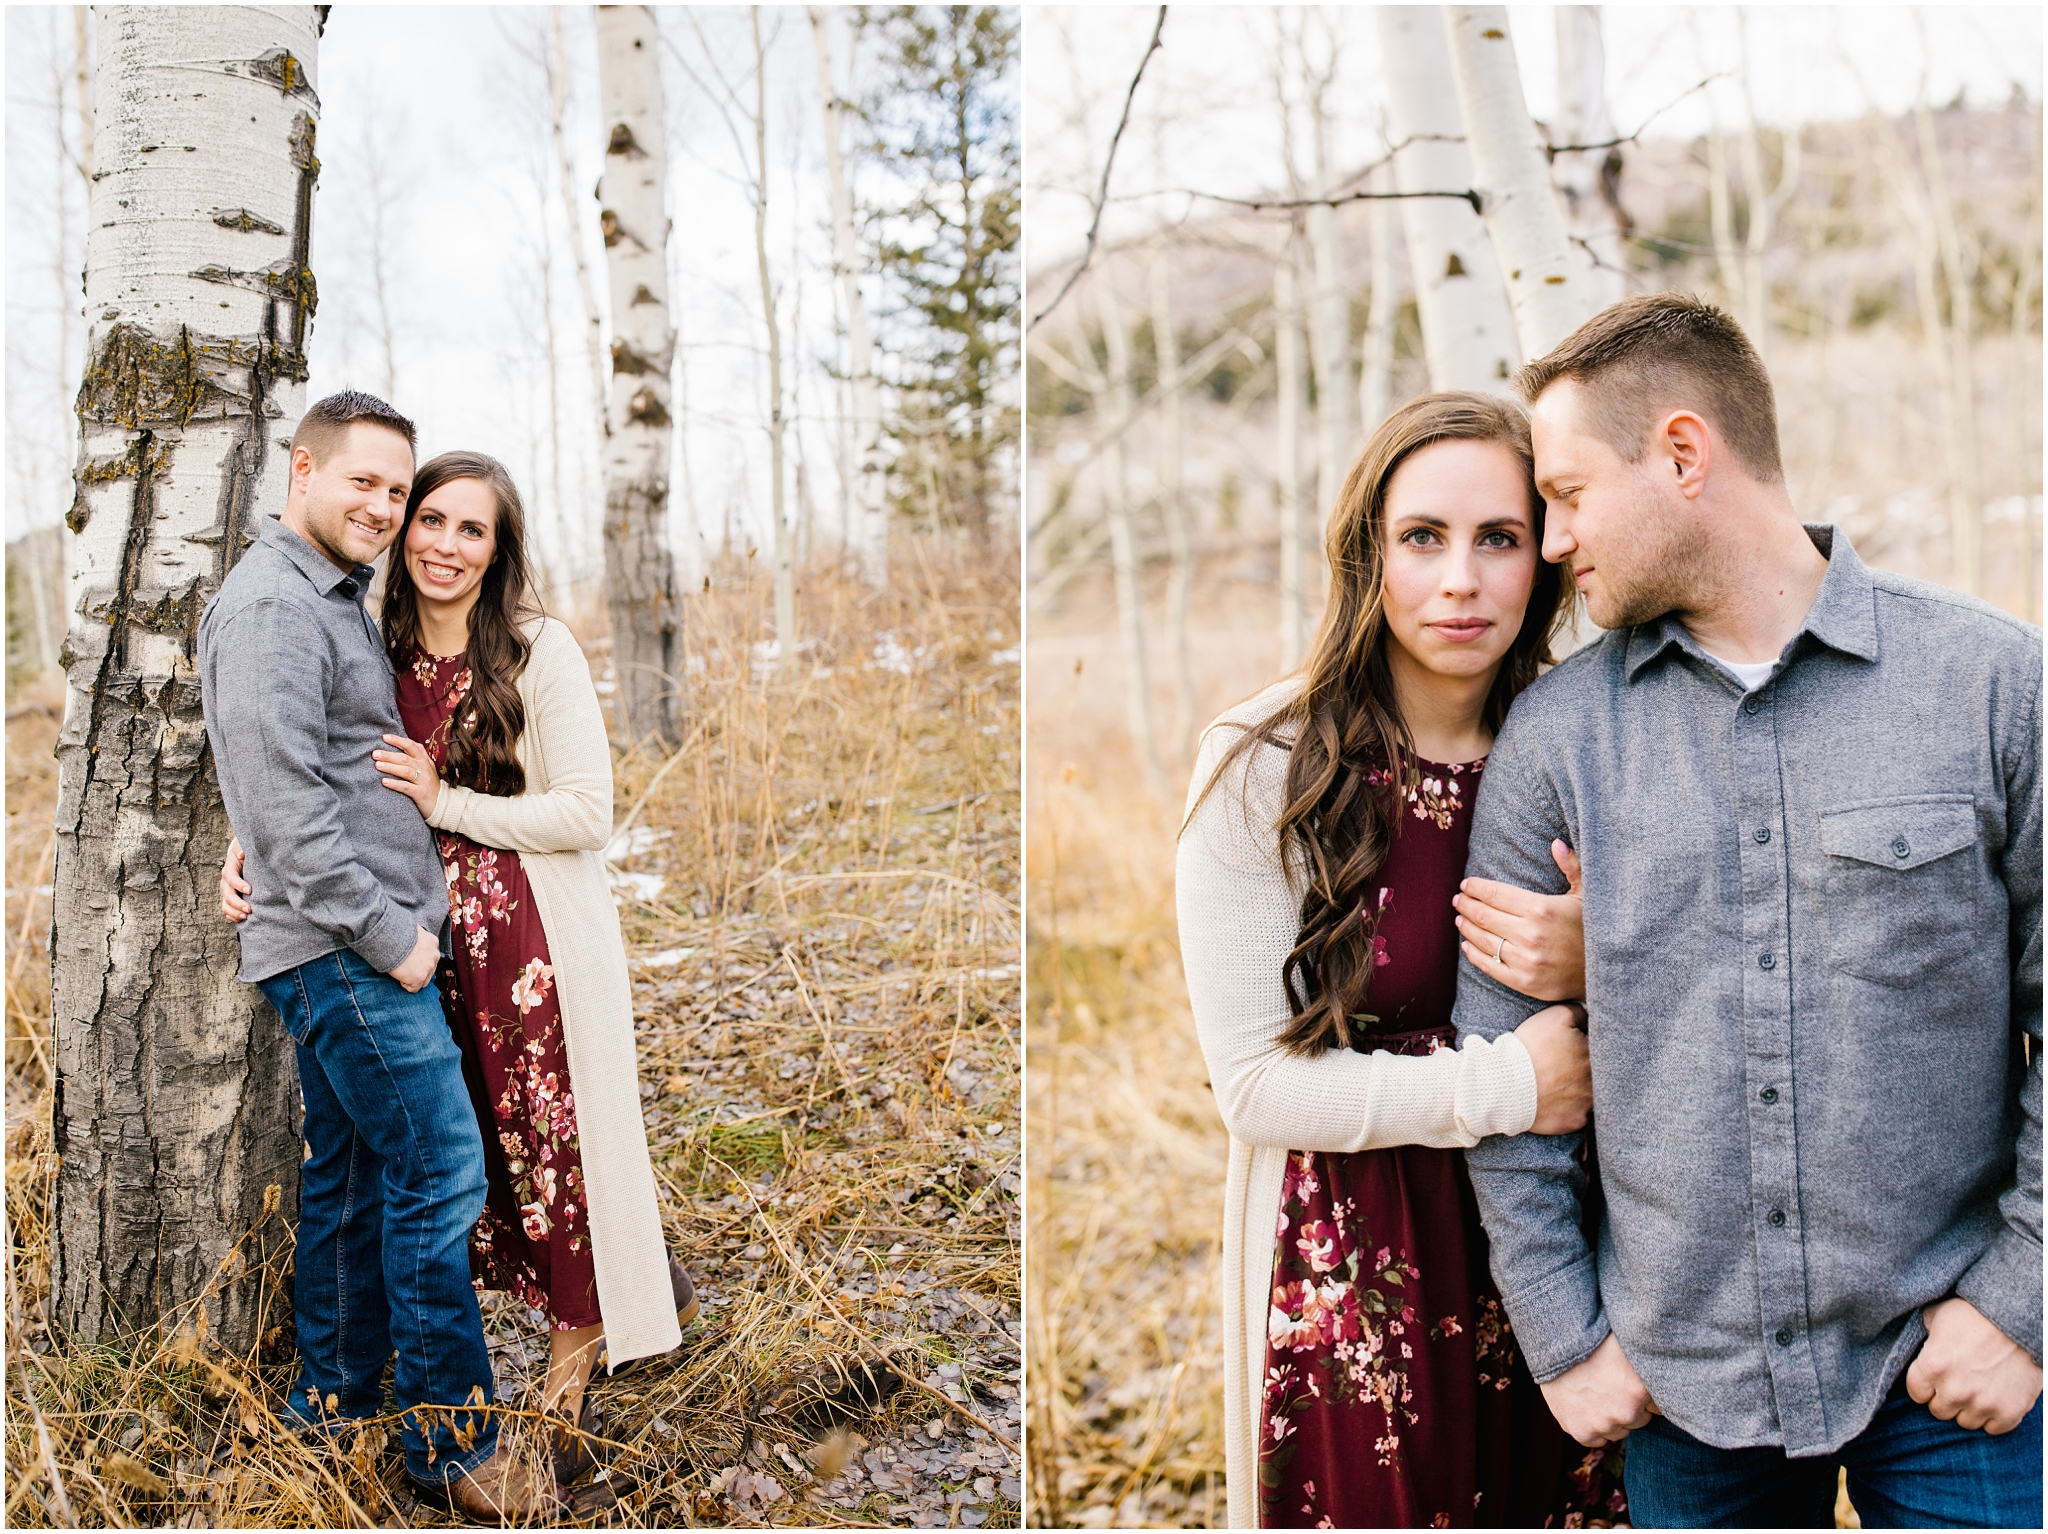 SS-Engagements-11_Lizzie-B-Imagery-Utah-Wedding-Photographer-Salt-Lake-City-Park-City-Logan-Utah-Temple.jpg